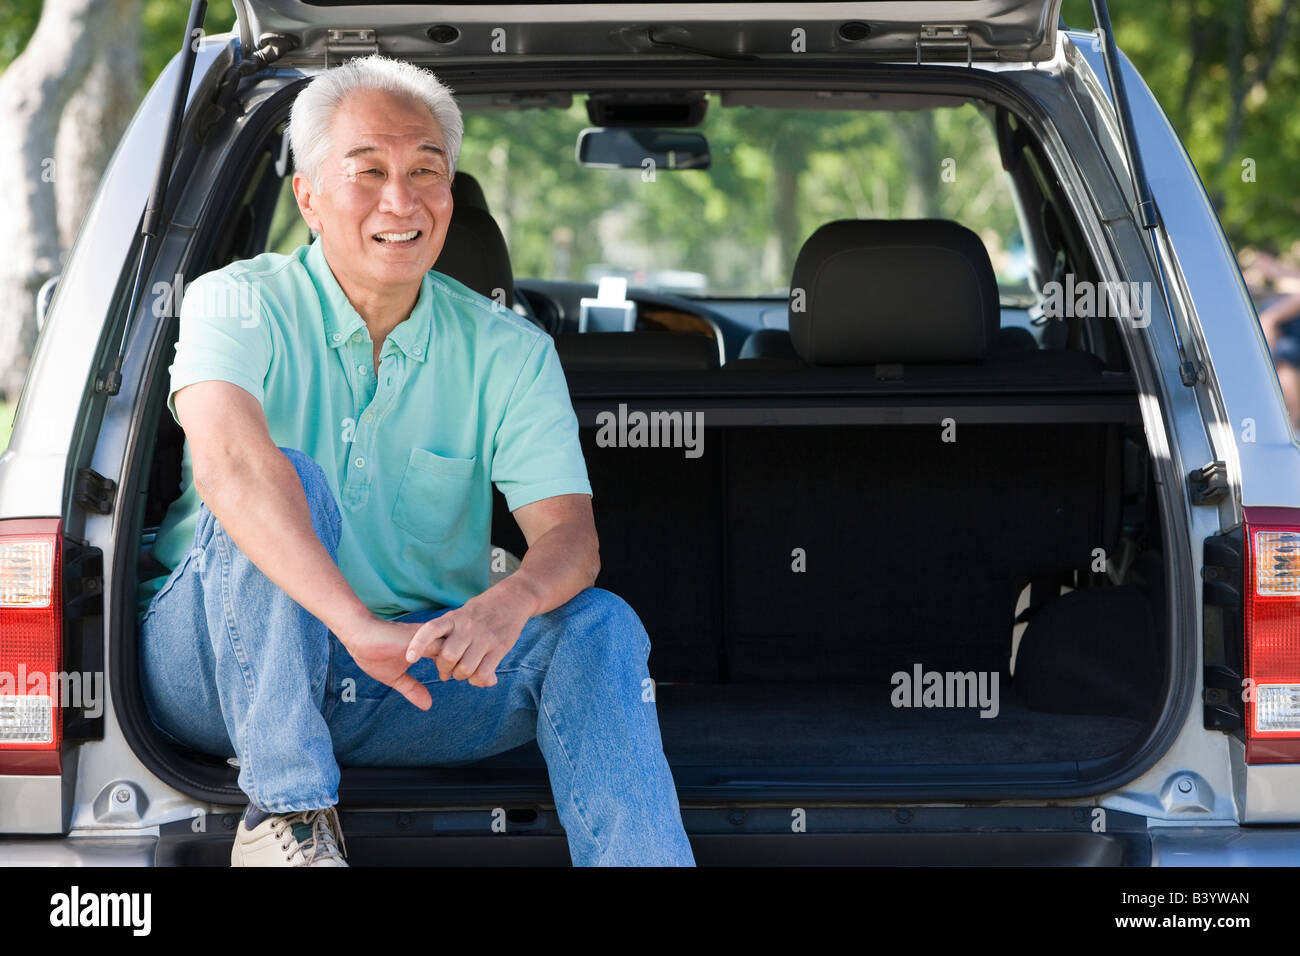 Man sitting in back of van smiling - Stock Image